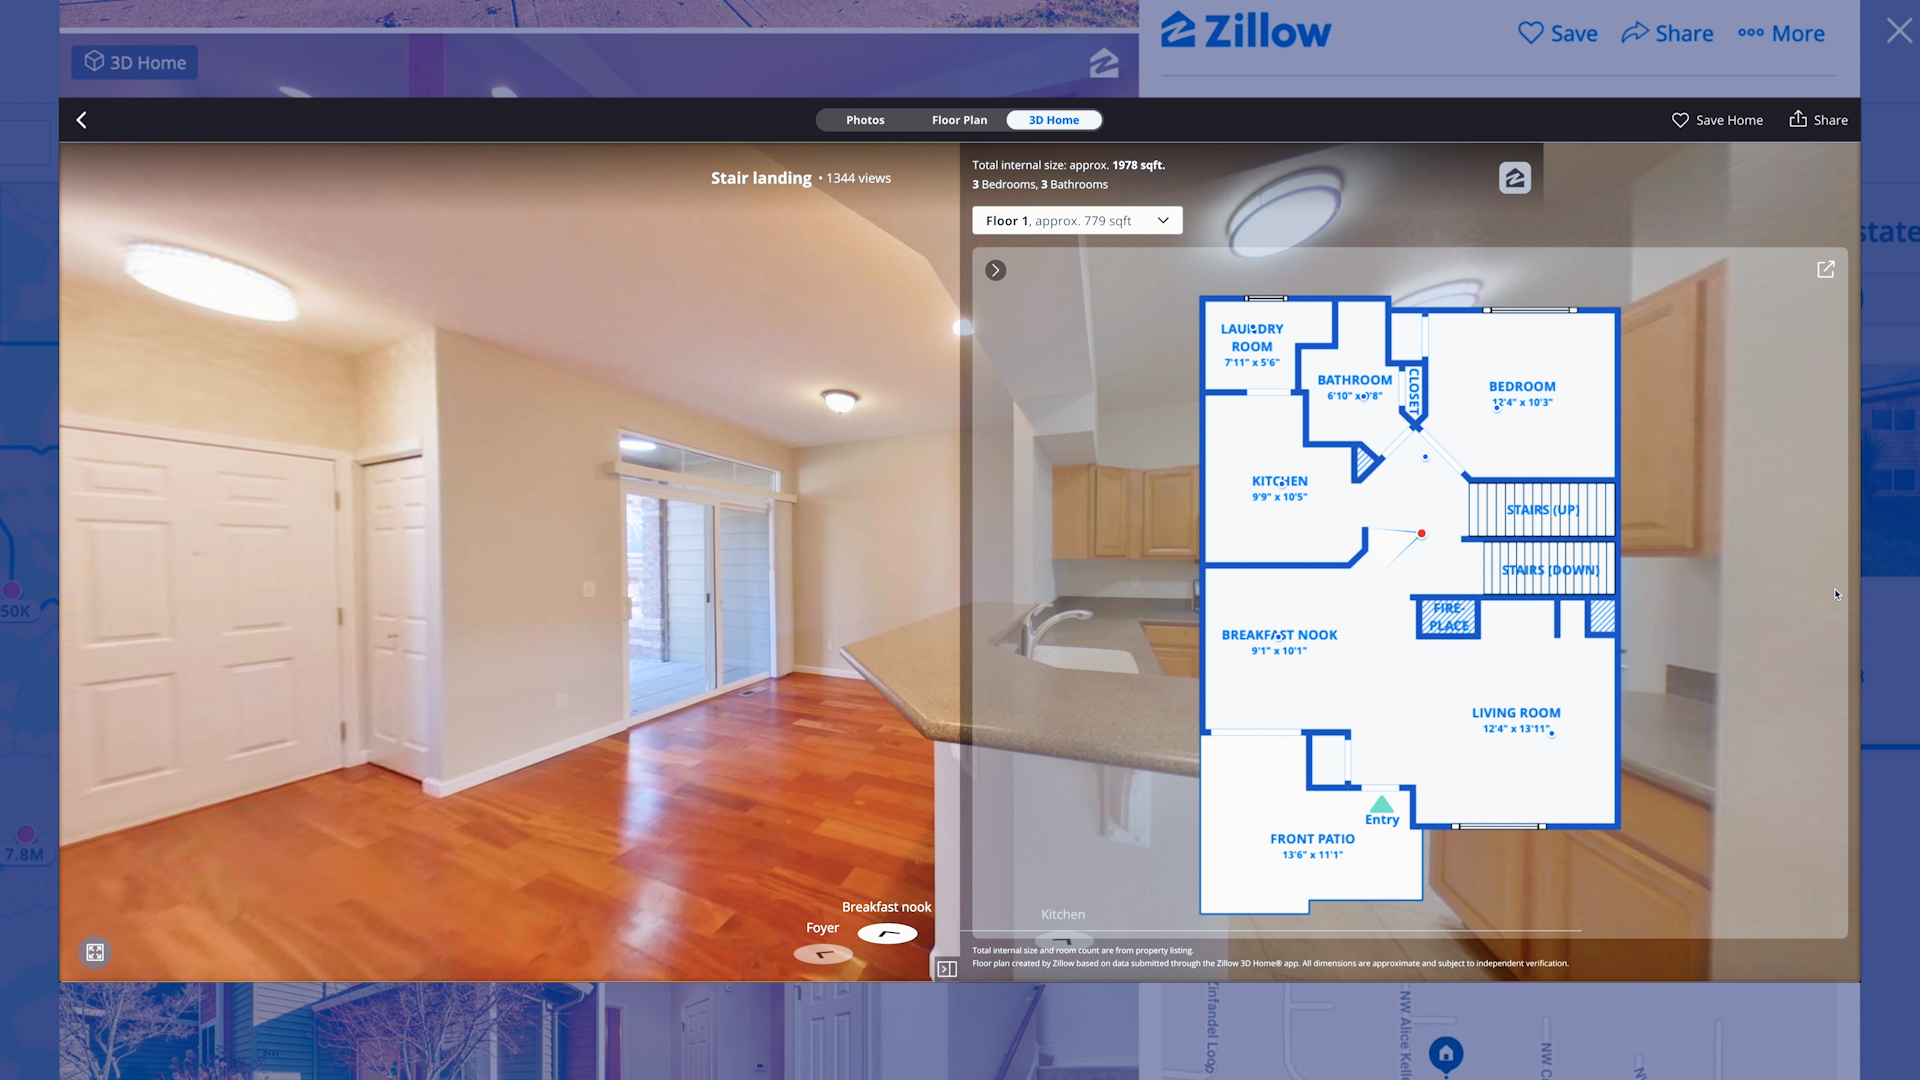 Zillow Surfing 2.0: Real estate giant uses AI to beef up virtual touring tool